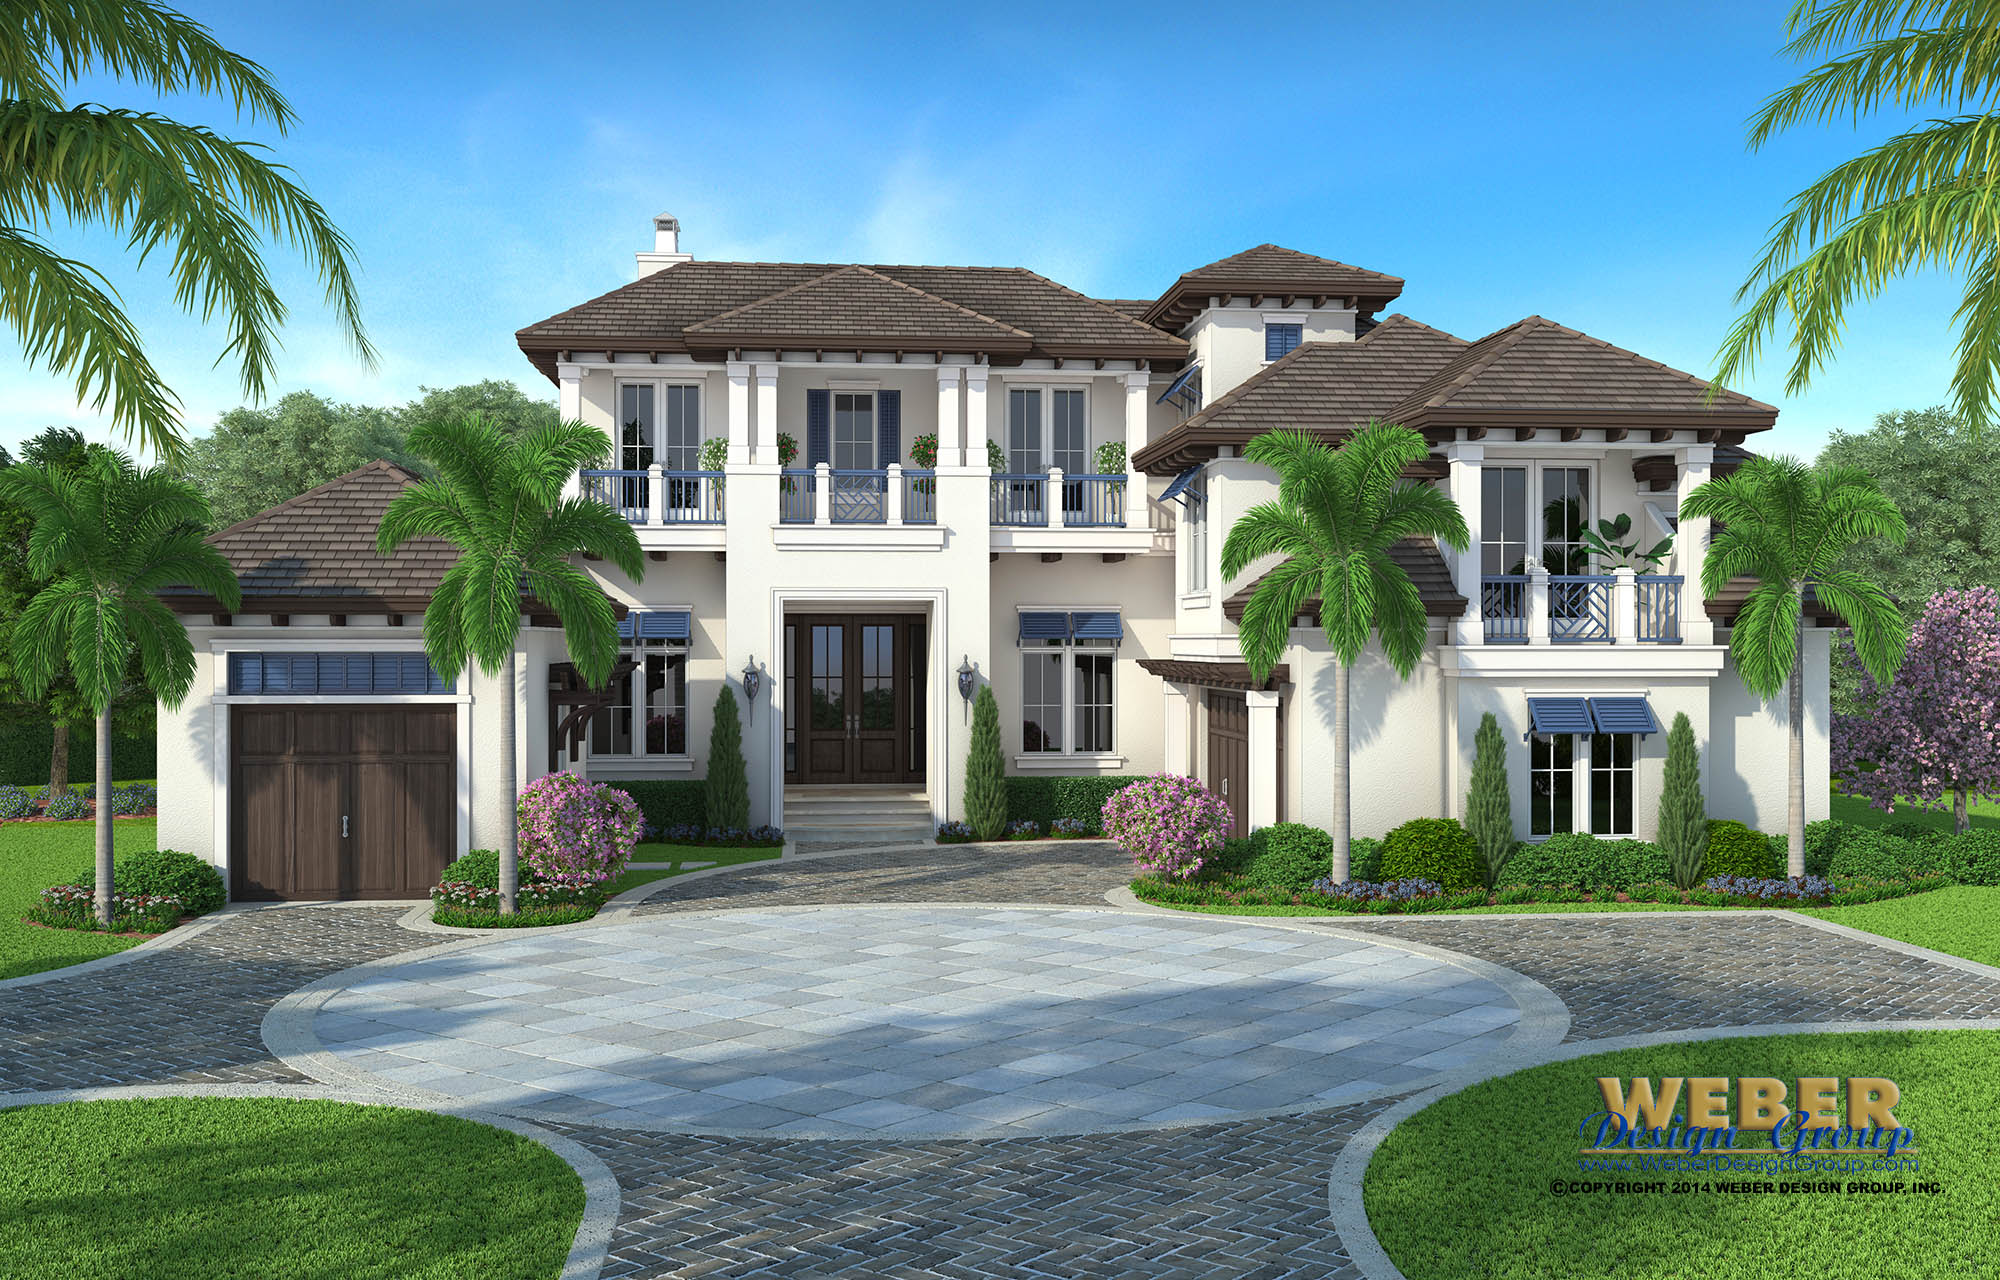 Florida house plans florida style home floor plans for Design house plans online for free